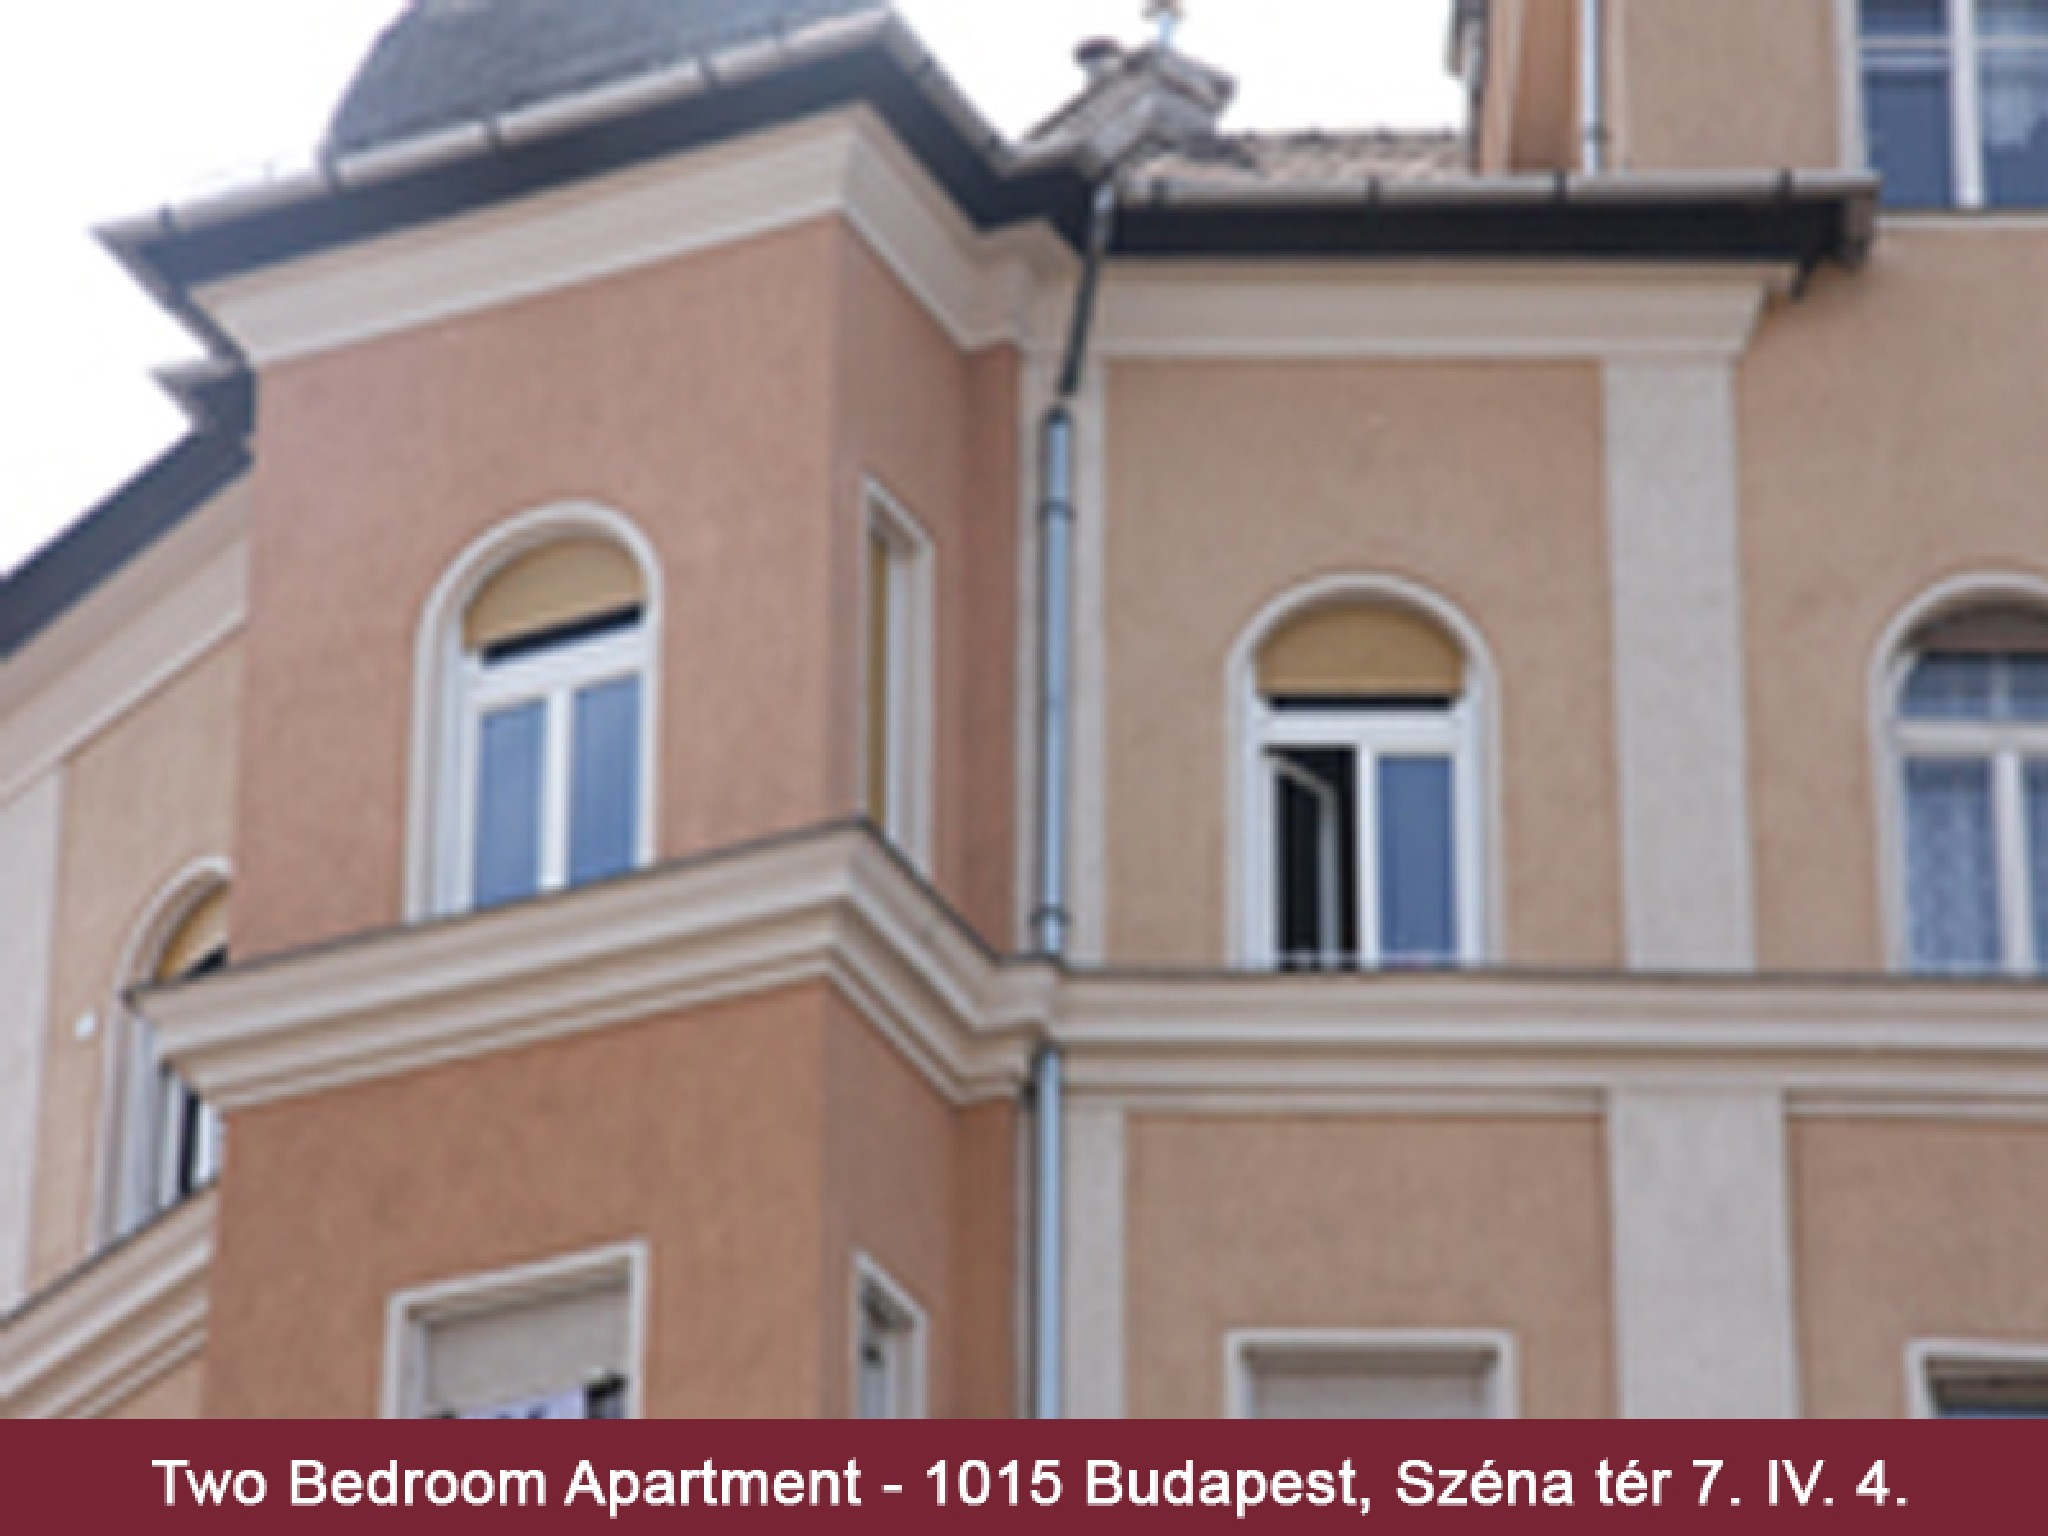 Dream Homes City Apartment Széna Budapest - Homlokzat